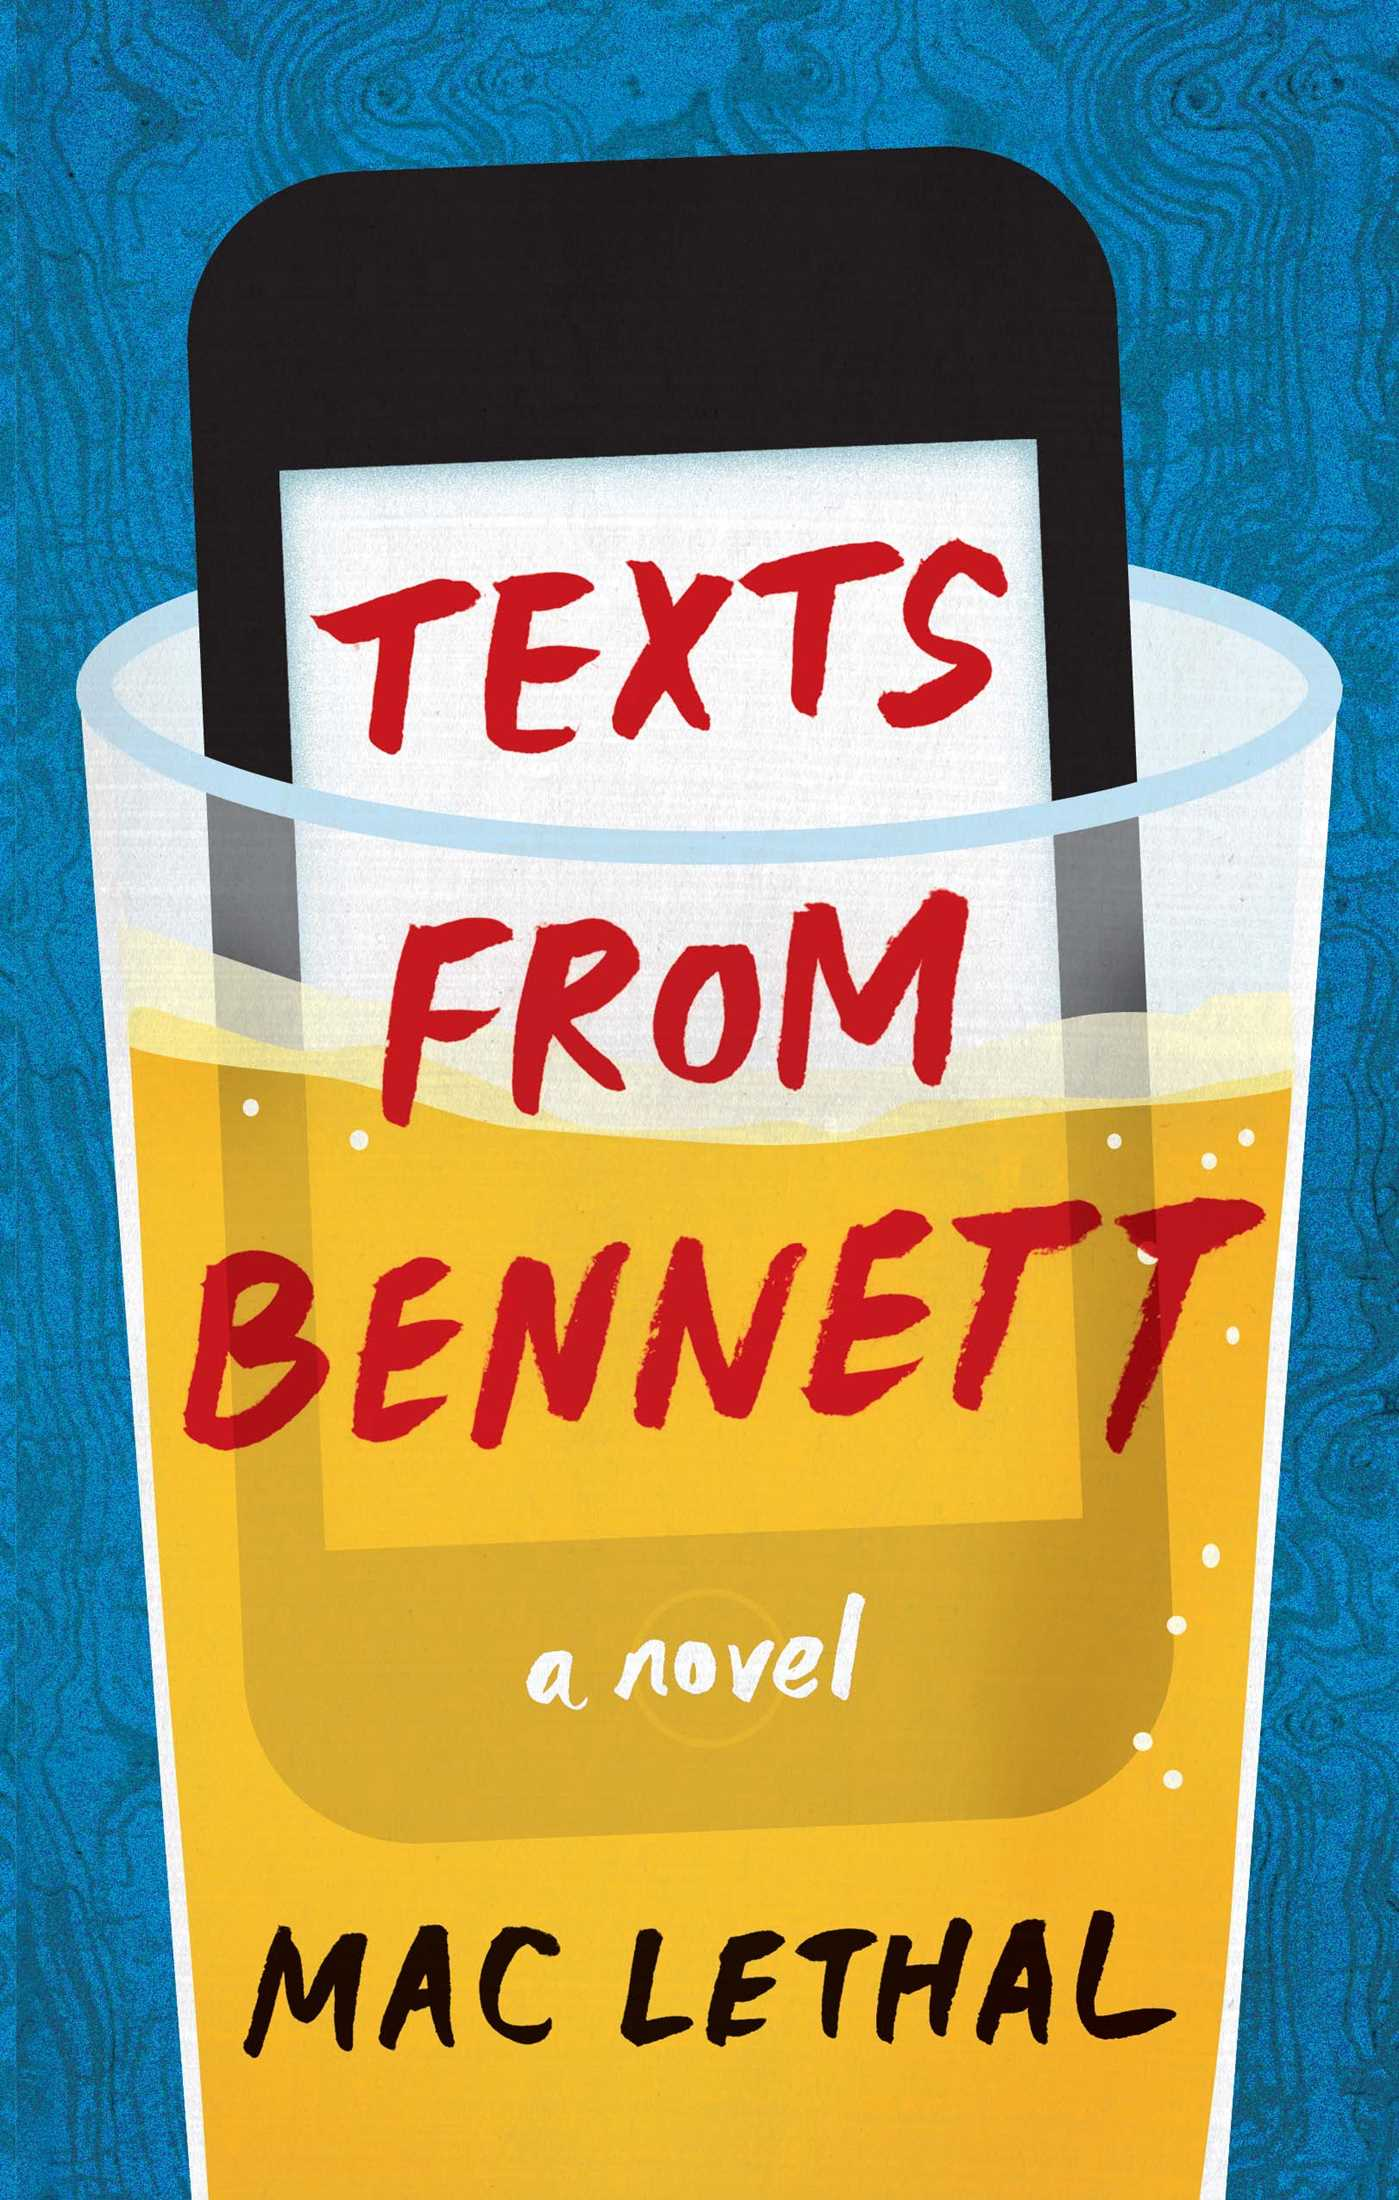 Texts-from-bennett-9781476706870_hr